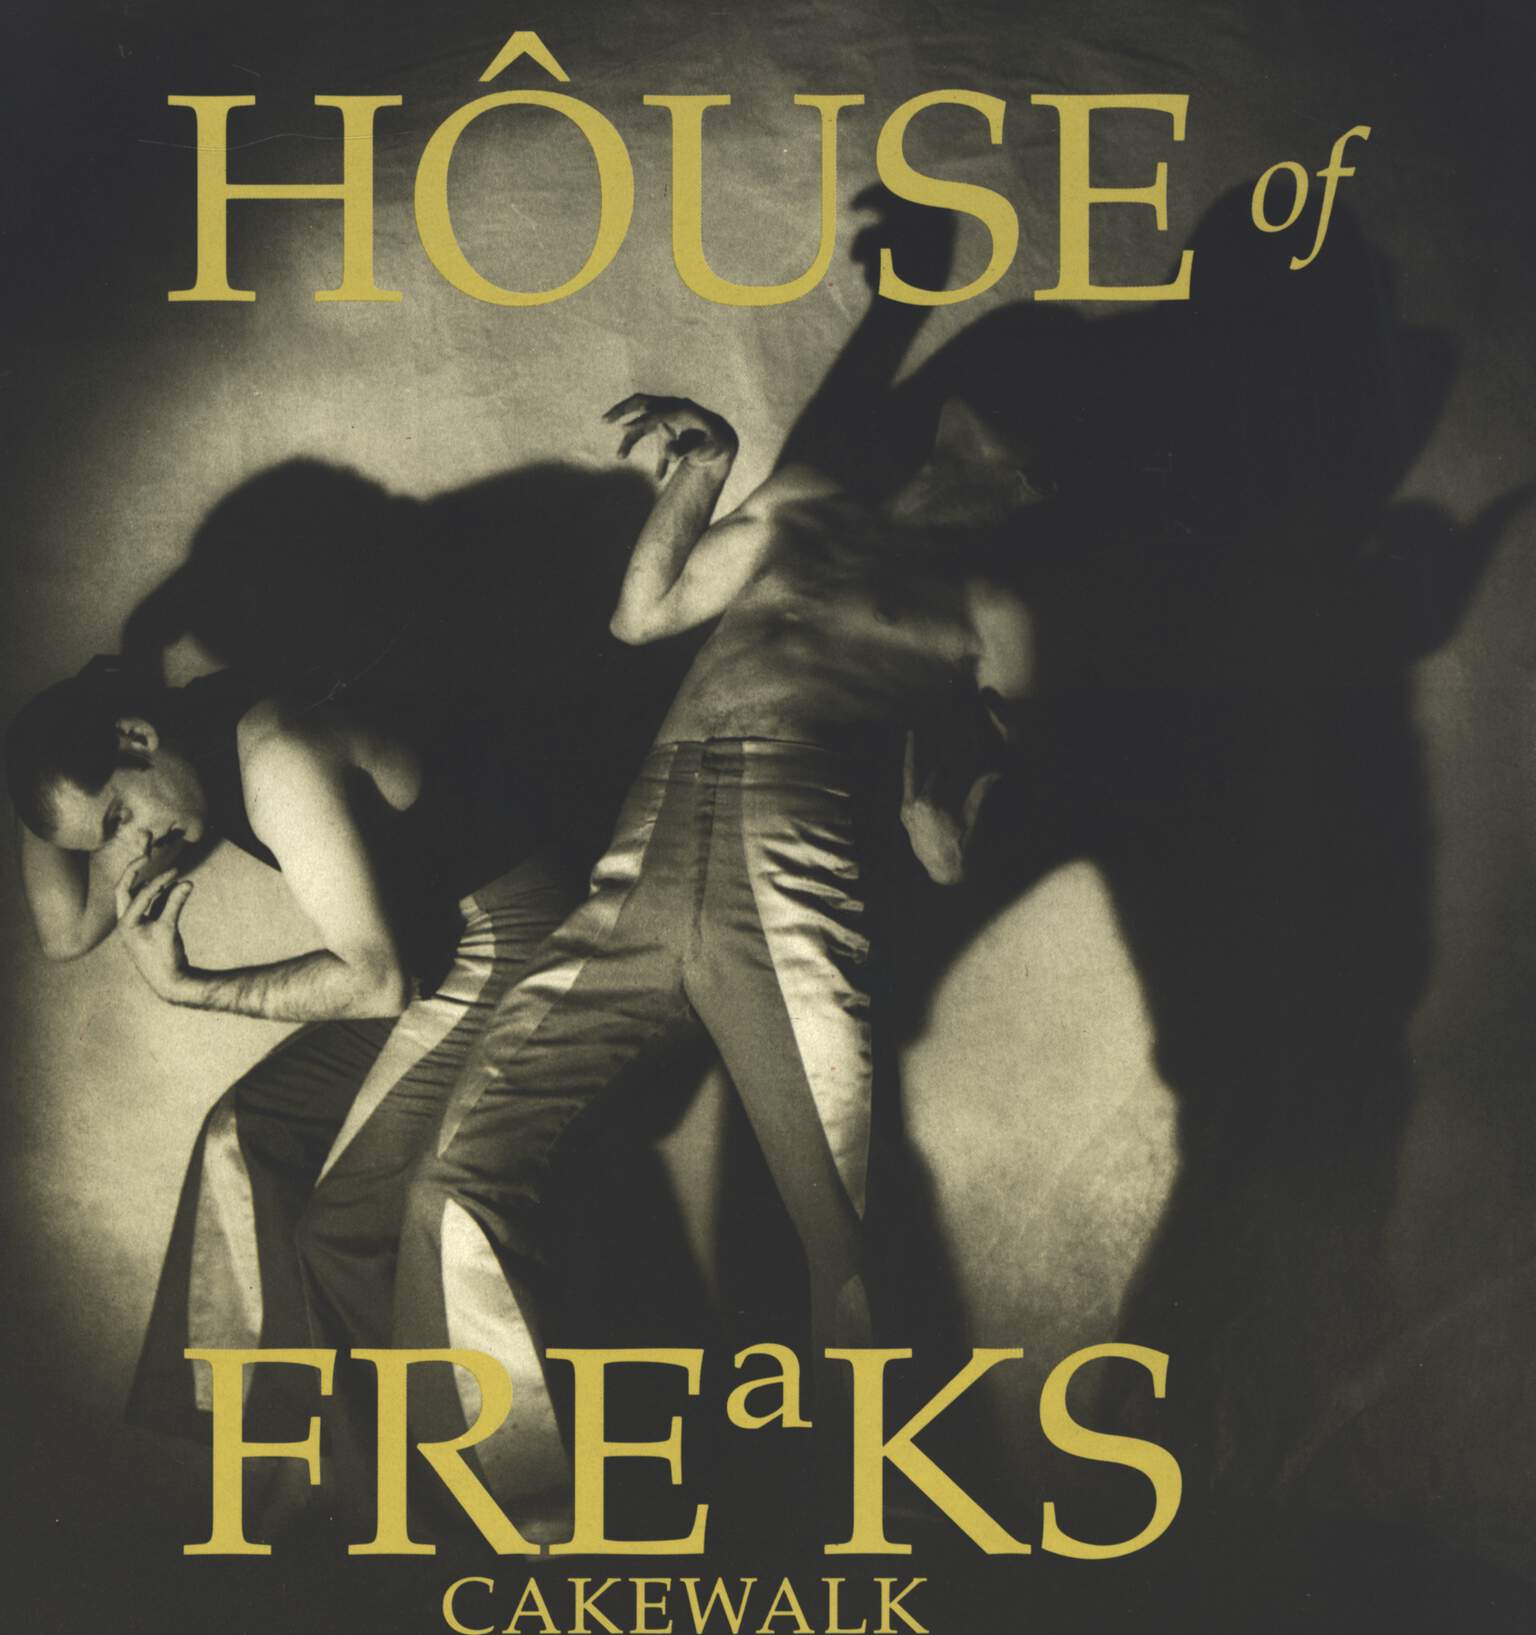 House Of Freaks: Cakewalk, LP (Vinyl)